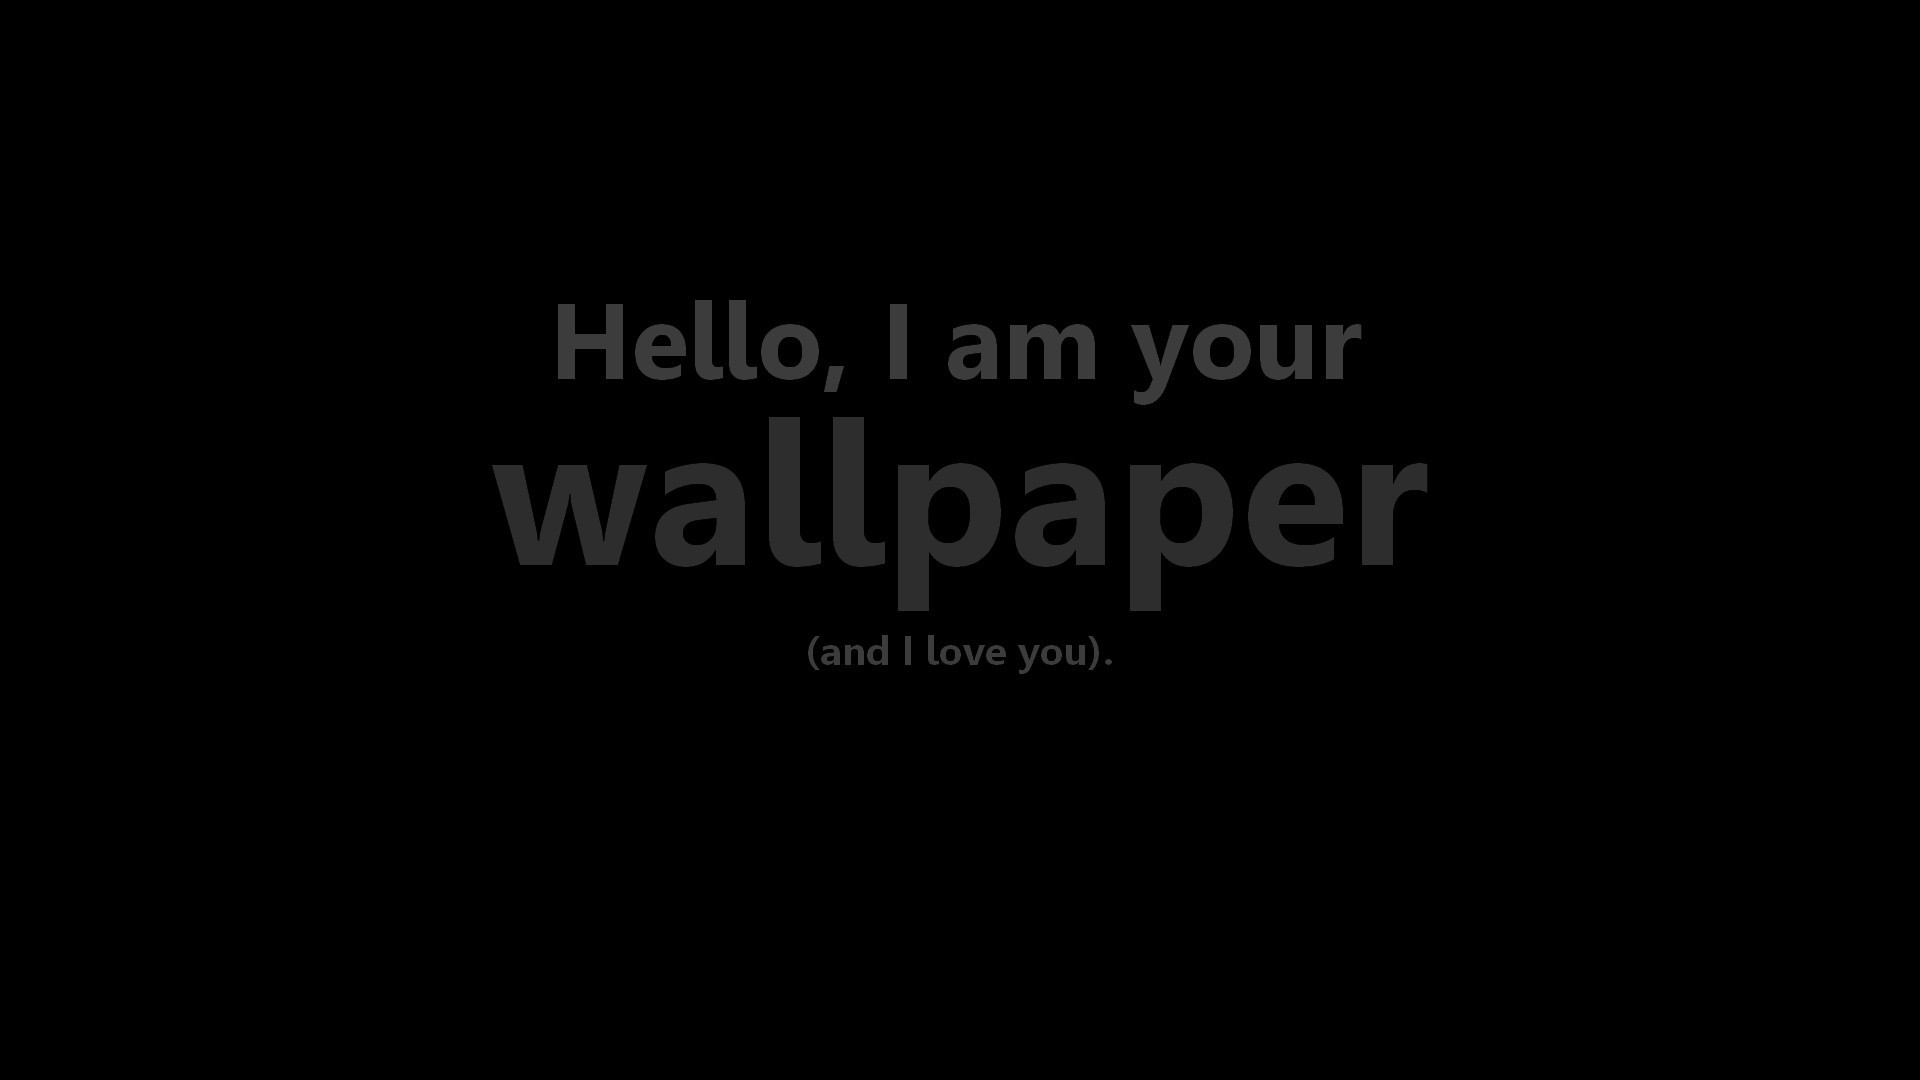 Hi, I'm your wallpaper and I love you